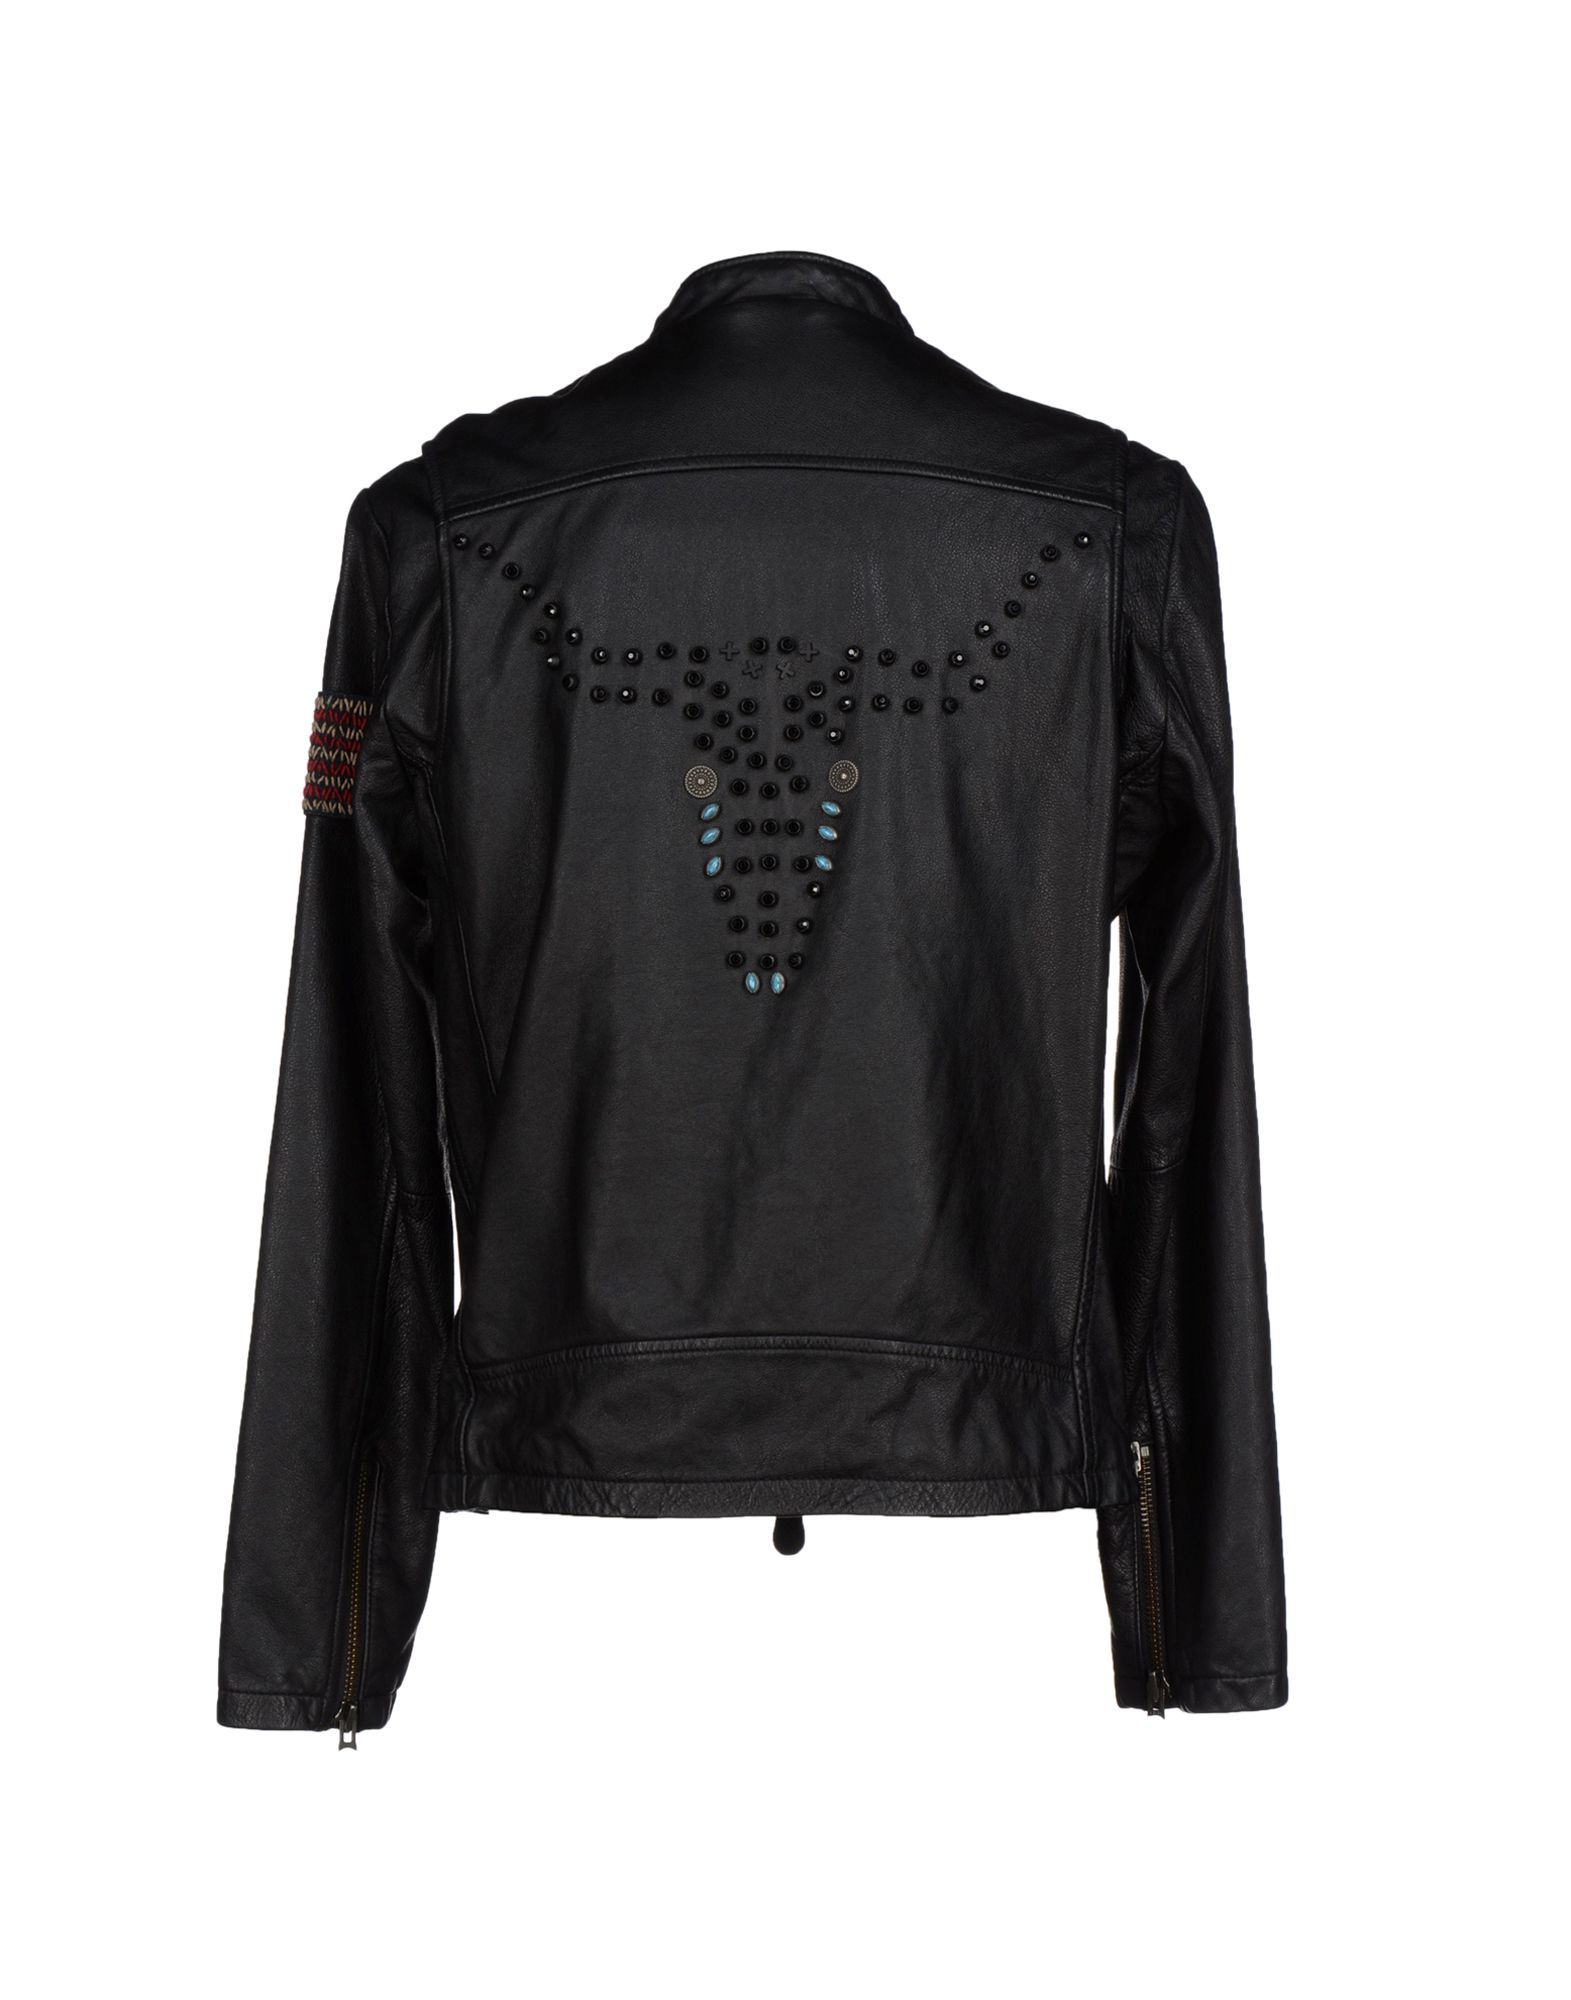 true religion jacket in black for men lyst. Black Bedroom Furniture Sets. Home Design Ideas